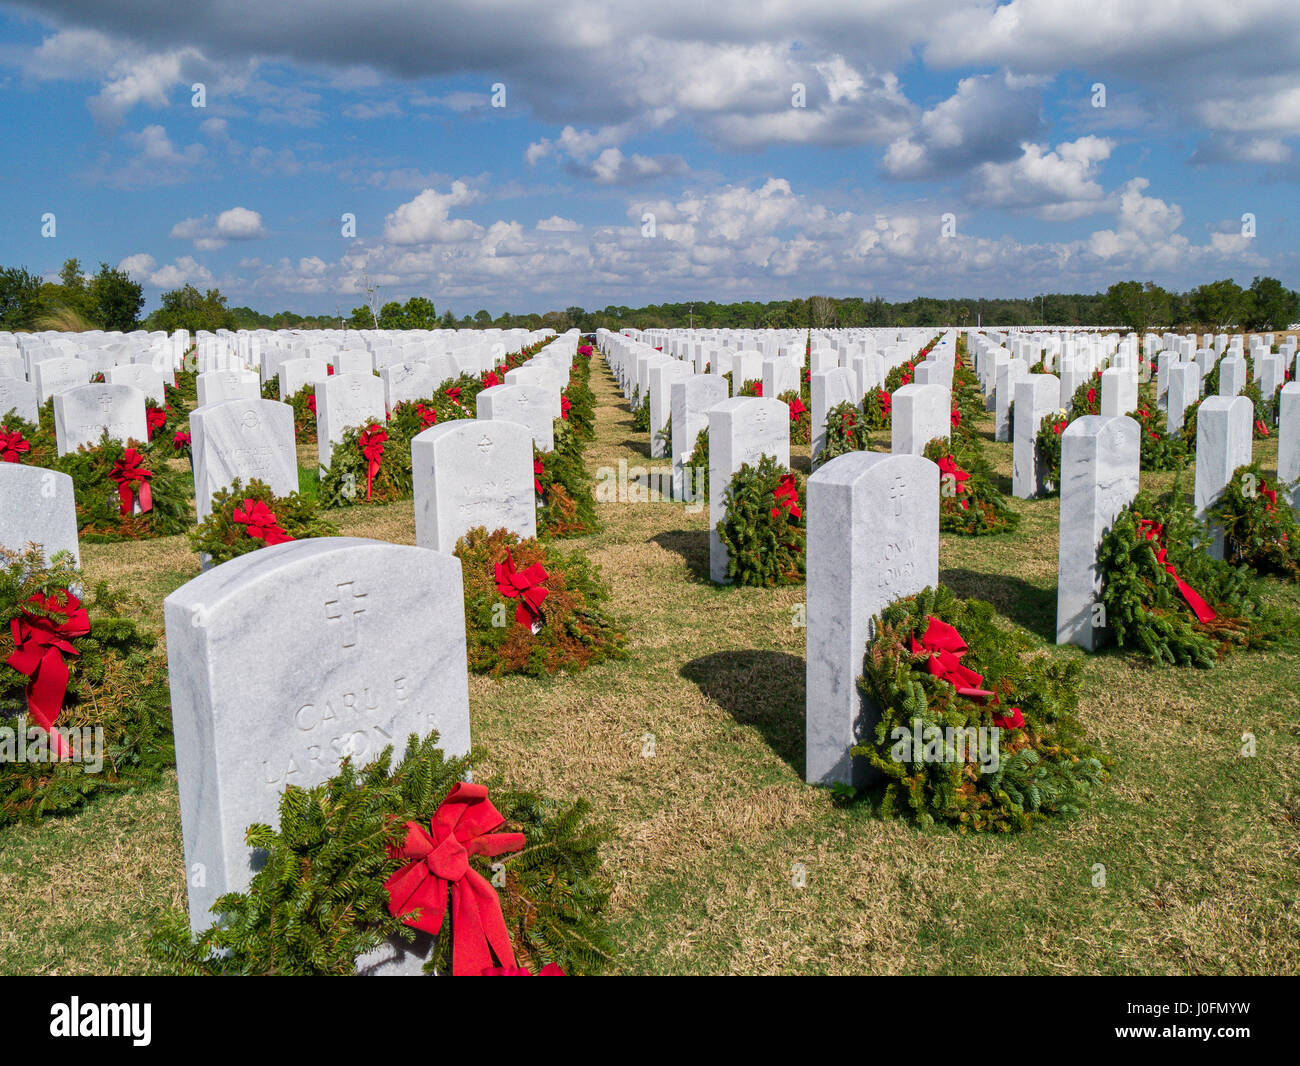 Rows of grave stones with wreaths & red bows in Sarasota National Cemetery in Sarasota Florida - Stock Image